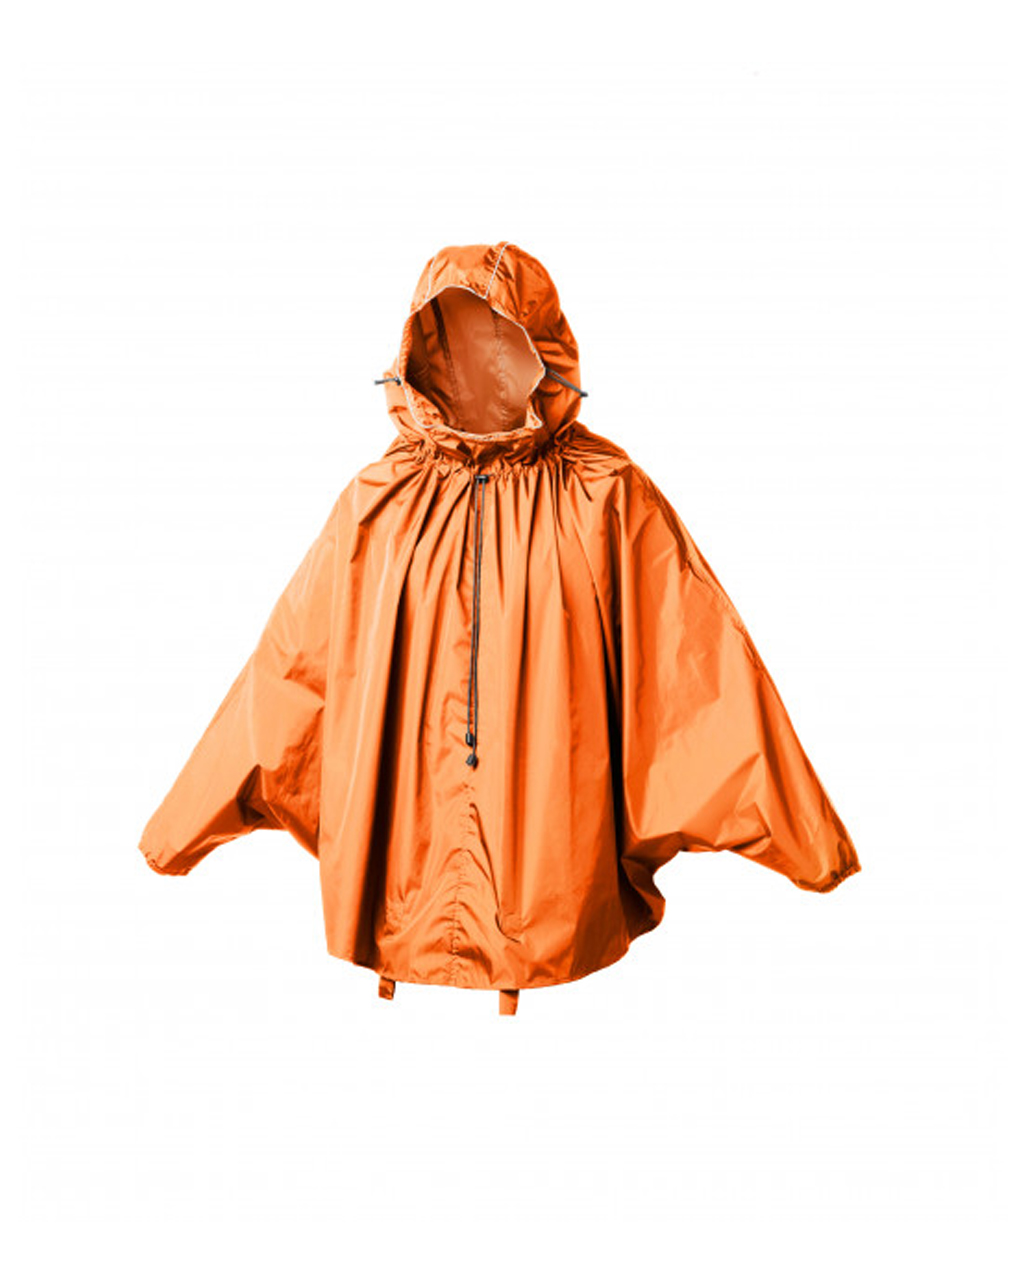 Brooks CAMBRIDGE STOWABLE RAIN CAPE - Orange